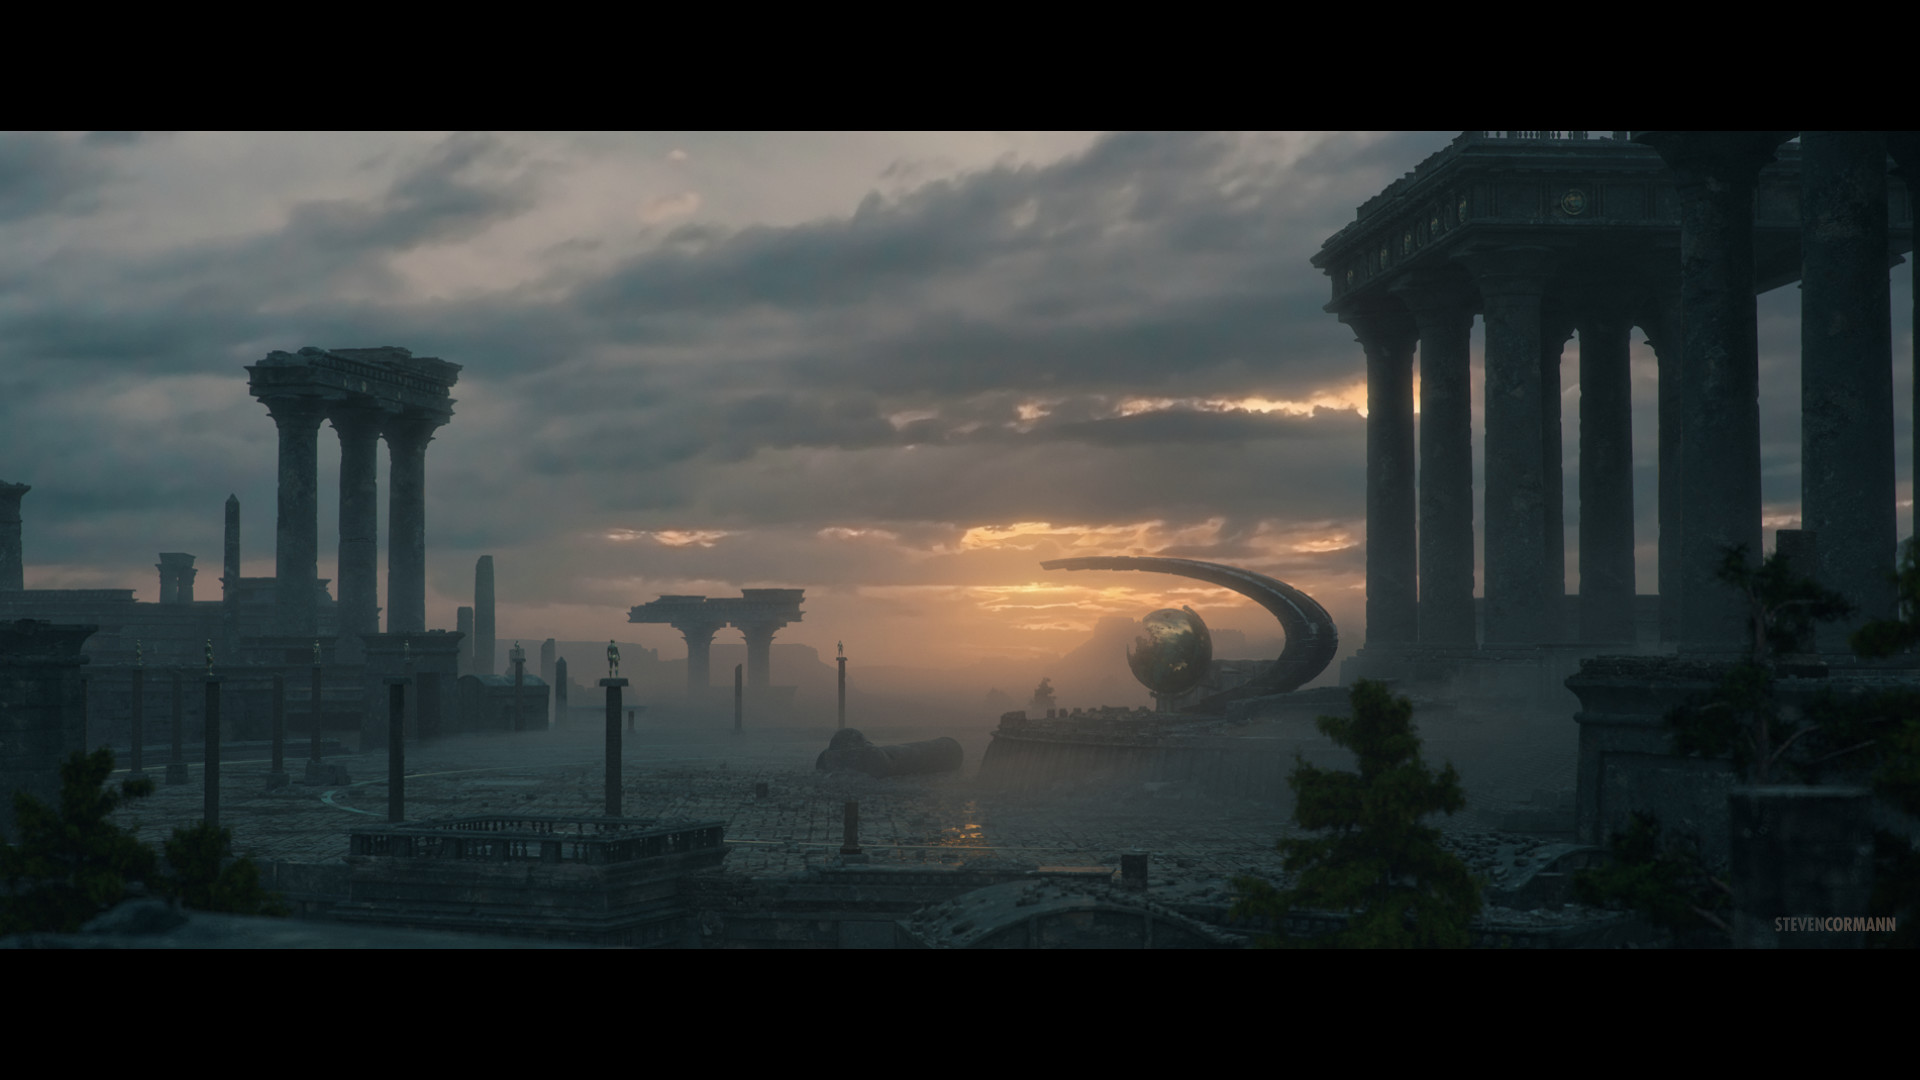 Interview vidéo de Steven Cormann, matte painter/CG generalist chez Axis, ILM, etc